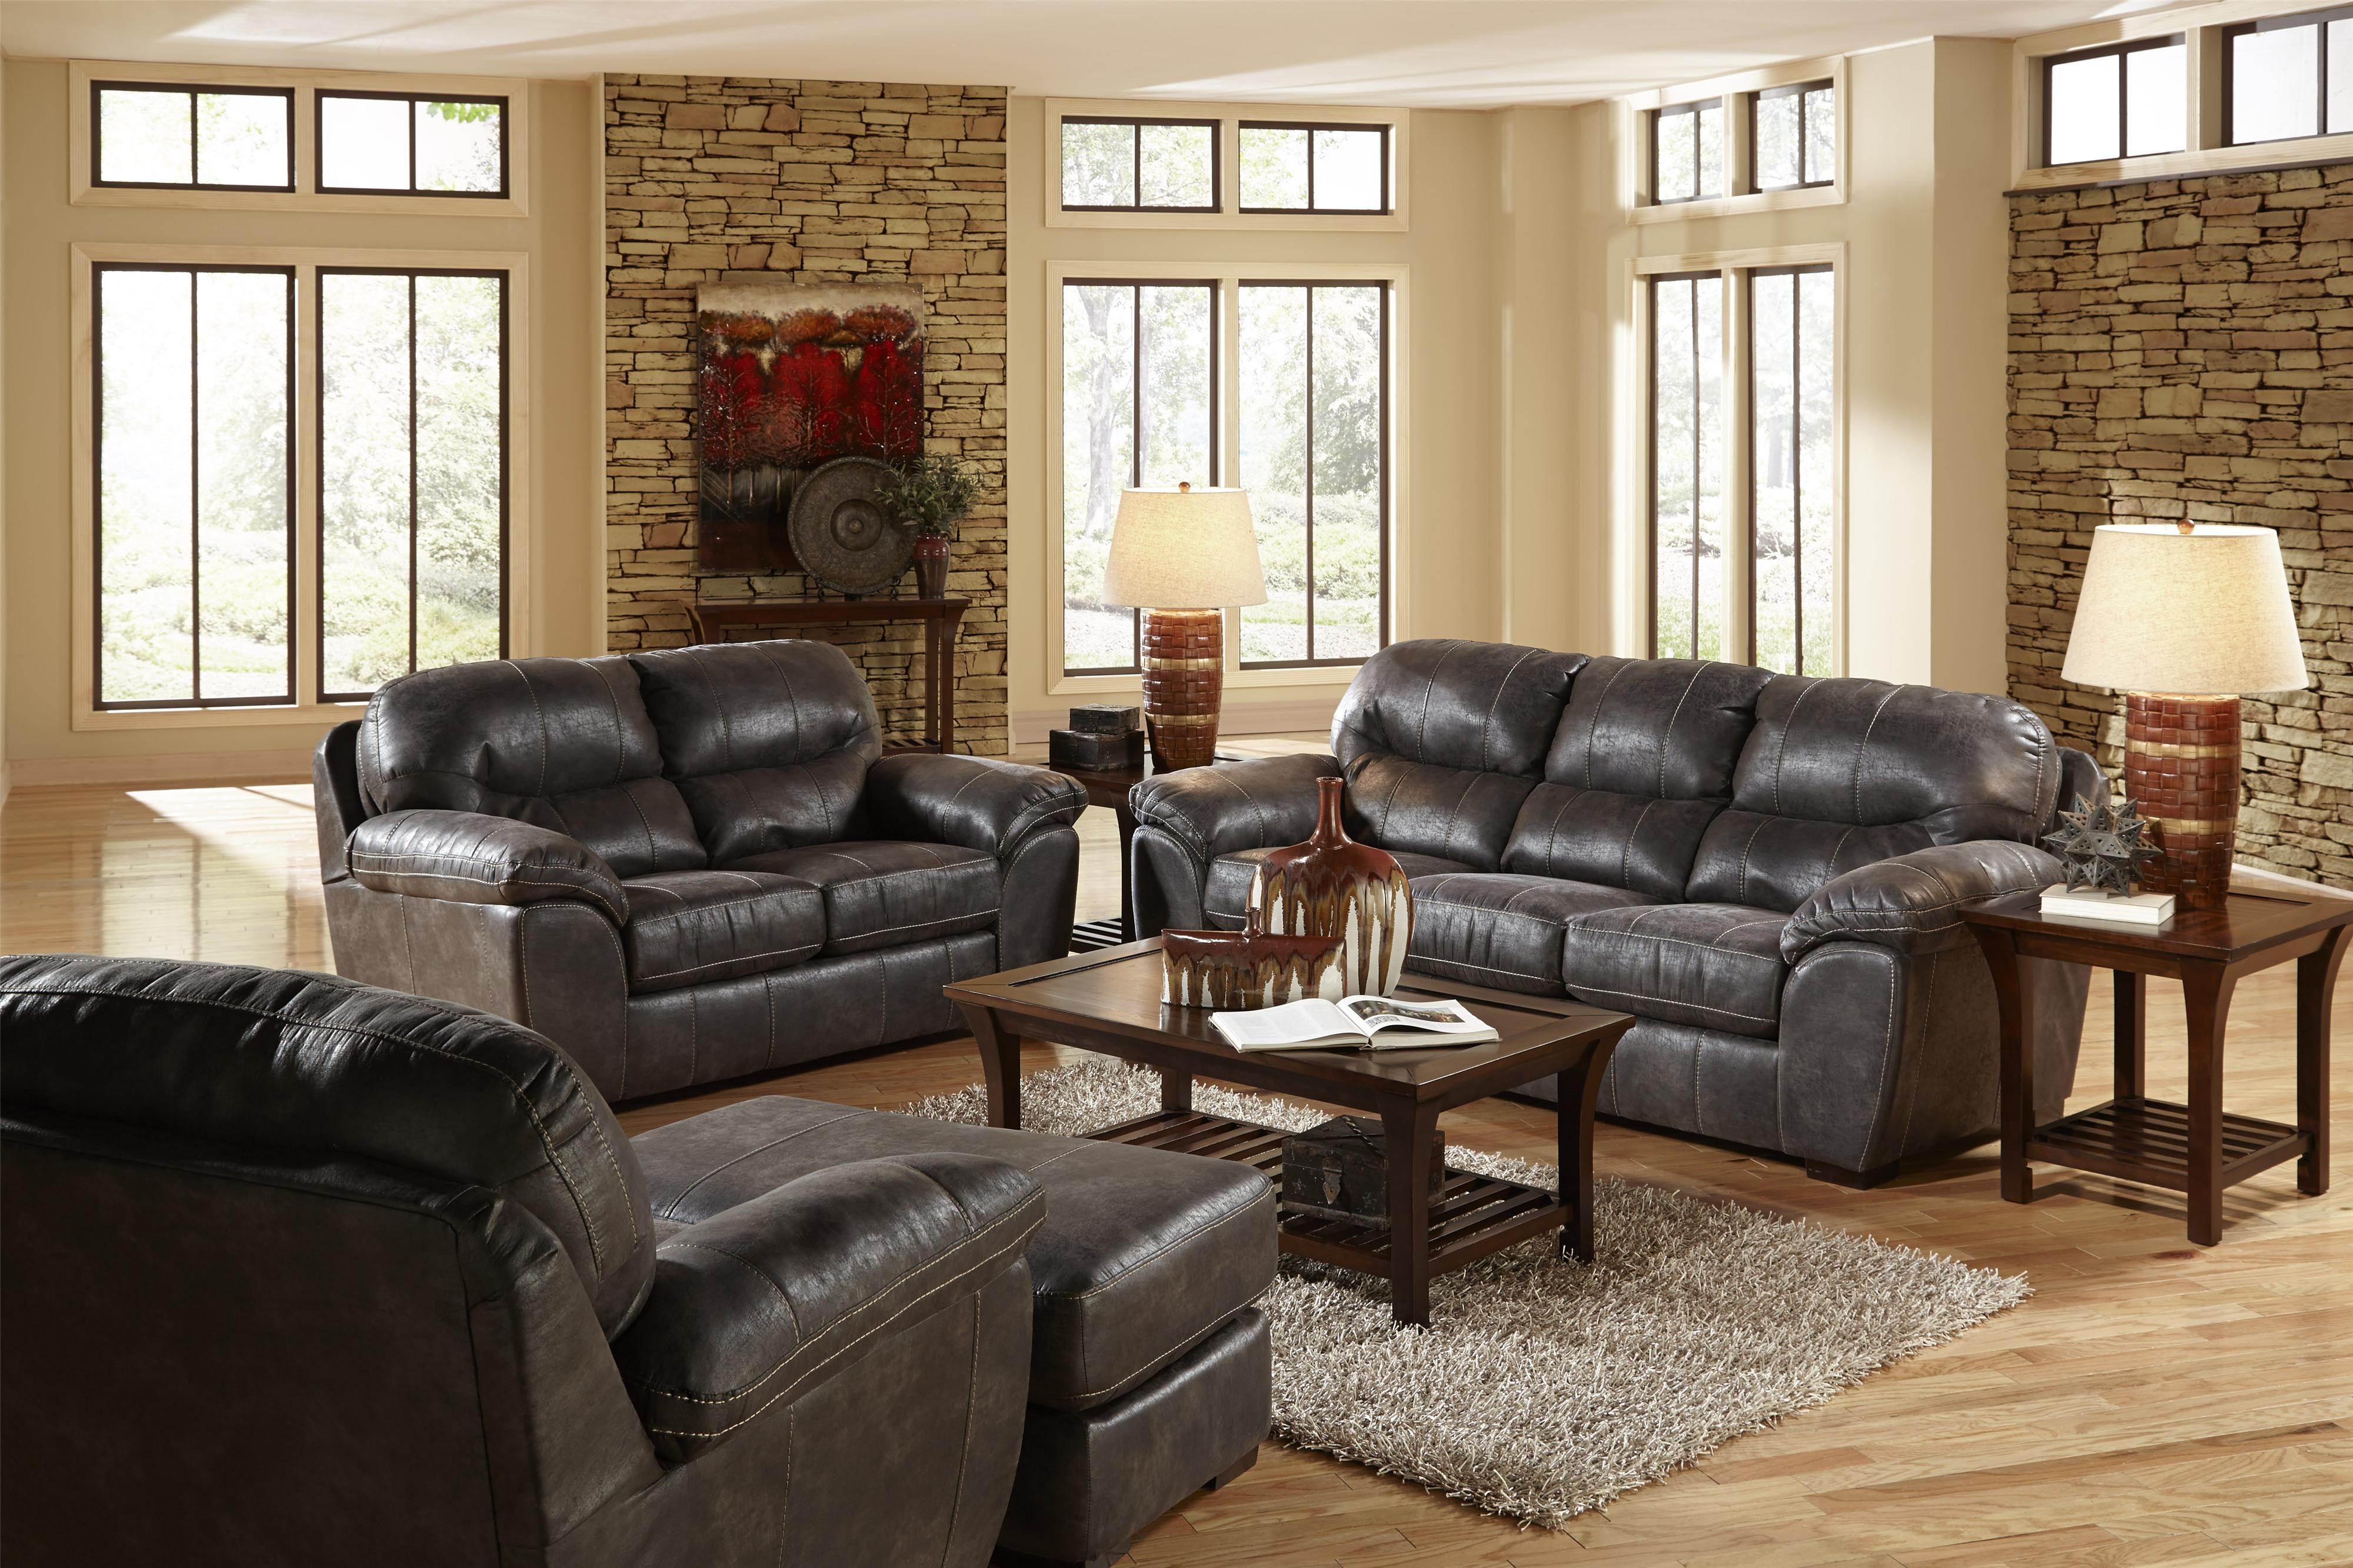 Living Room Chair And Ottoman Set Chair And A Half And Ottoman Set For Living Rooms And Family Rooms